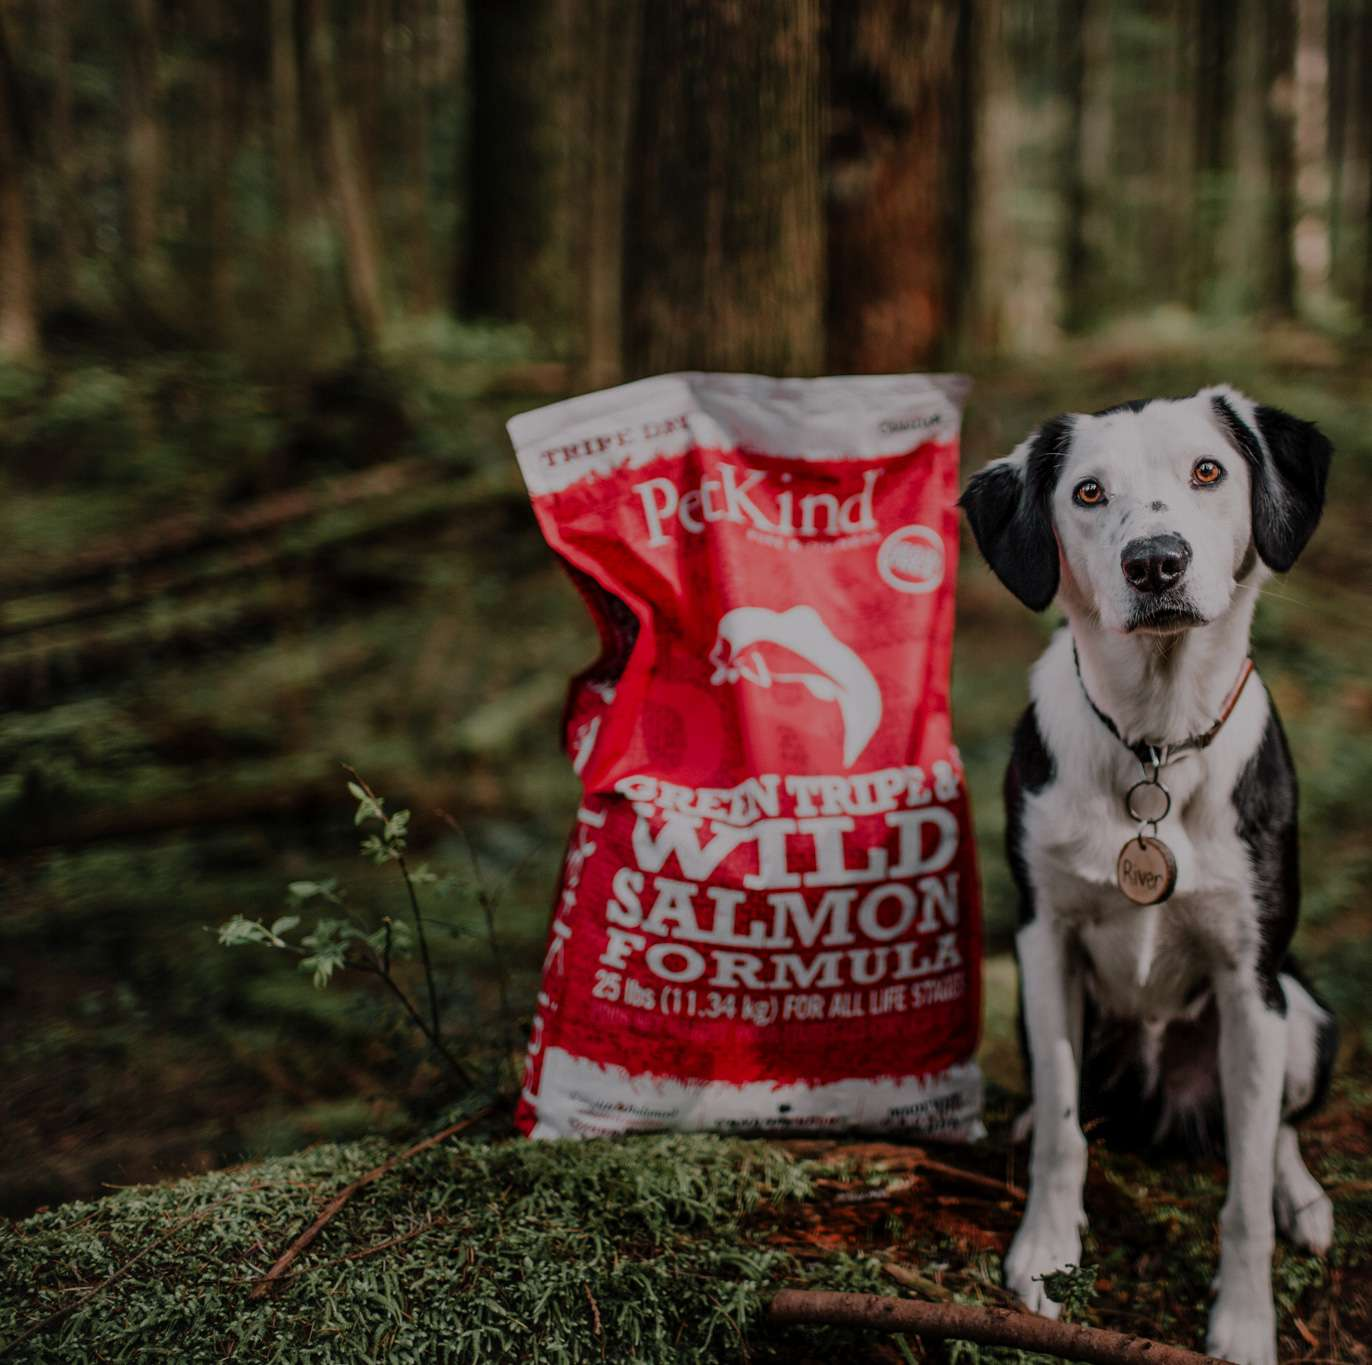 Border Collie and Labrador Retriever in a forest with PetKind Tripe Dry Green Tripe and Wild Salmon formula.